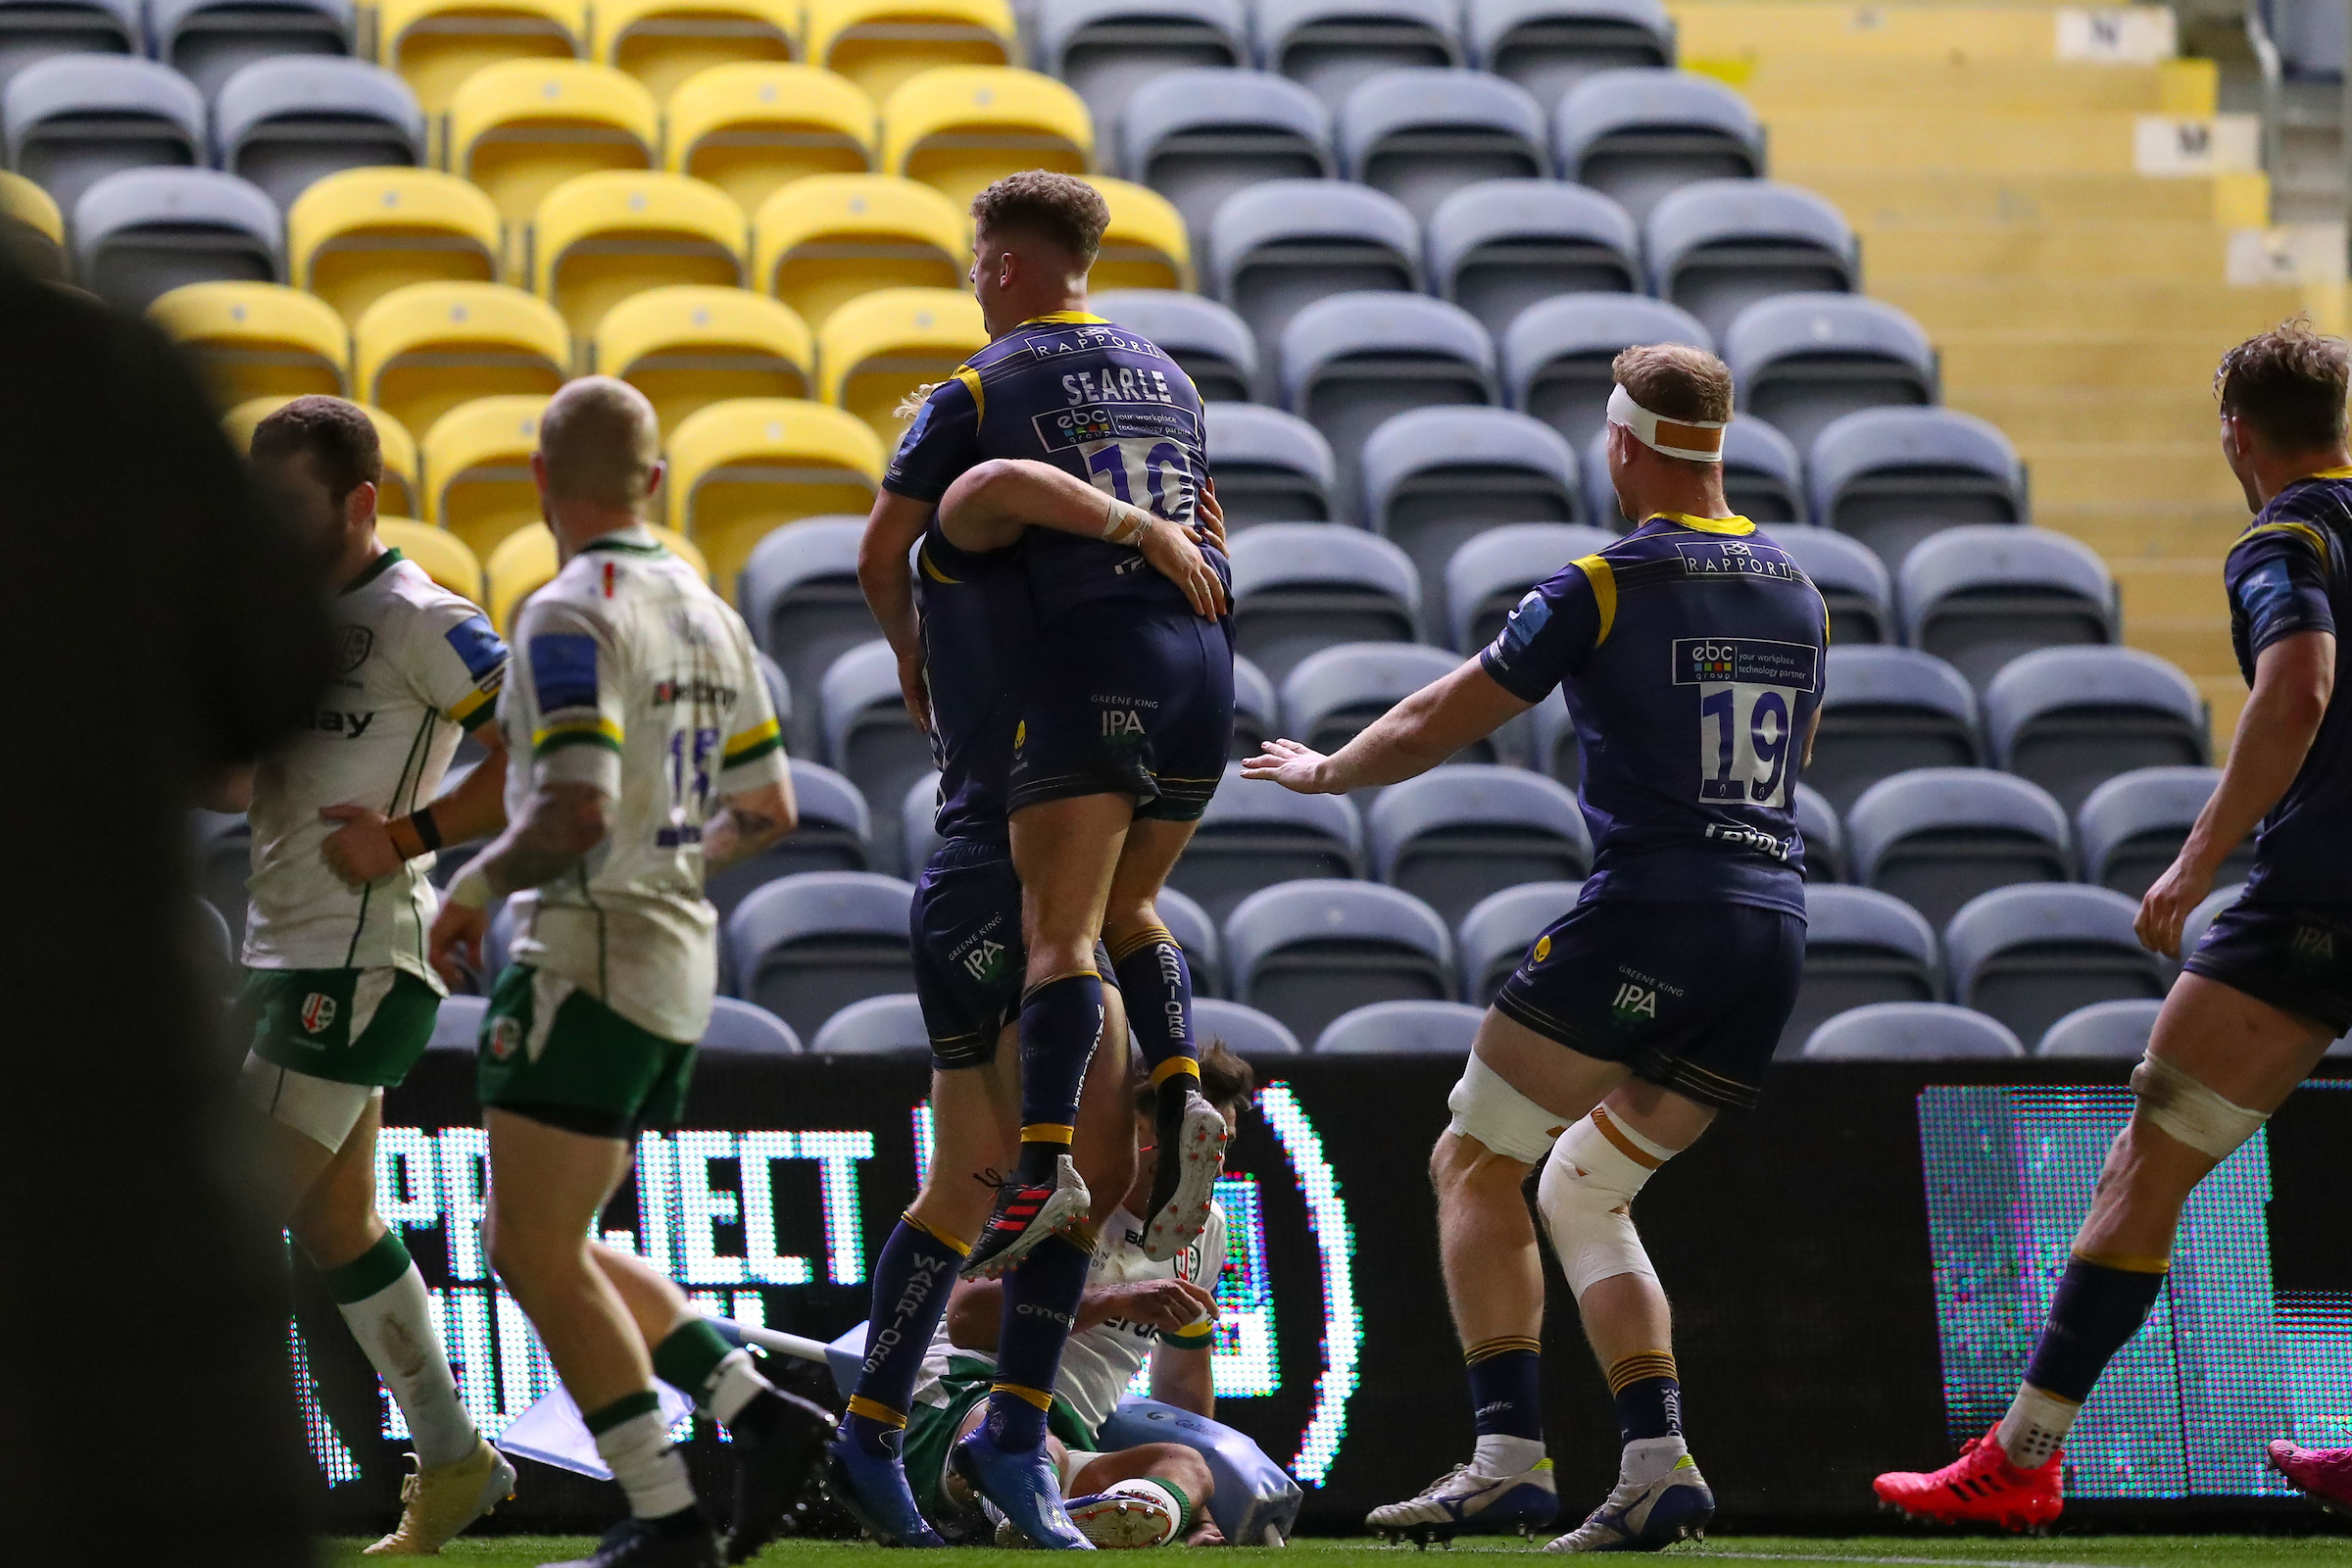 Match report: Worcester Warriors 11 - 10 London Irish